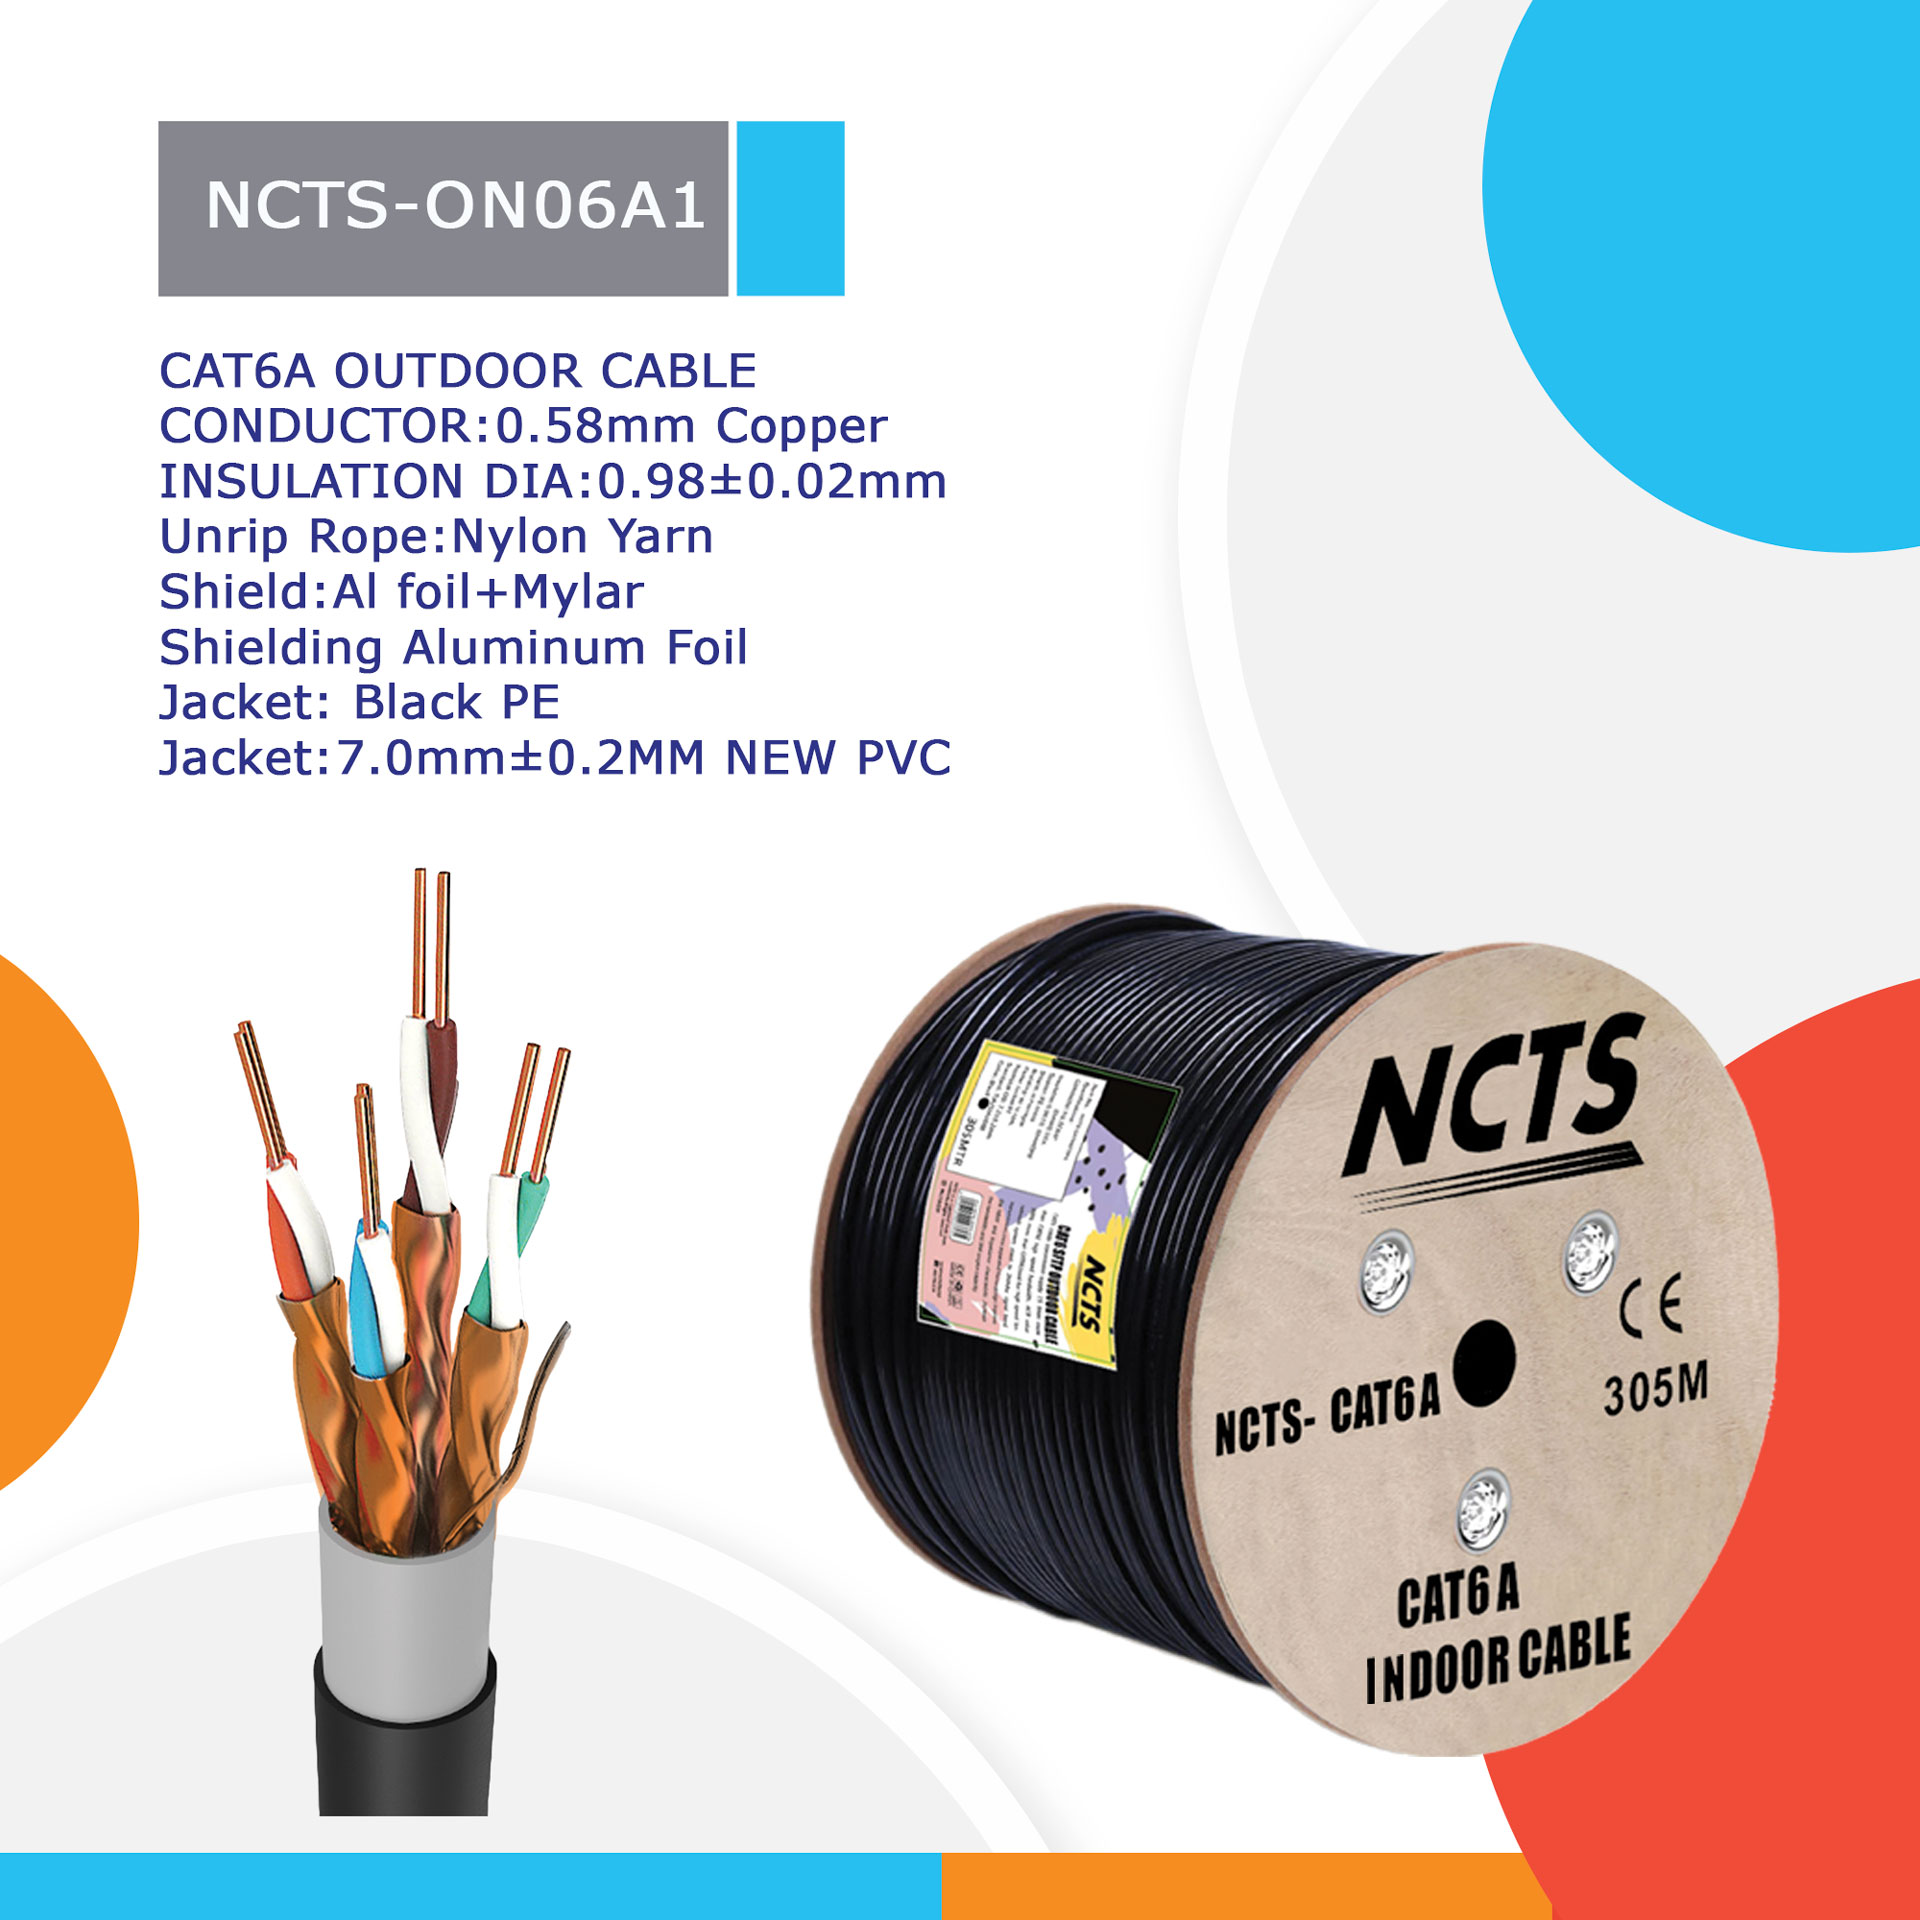 NCTS-ON06A1